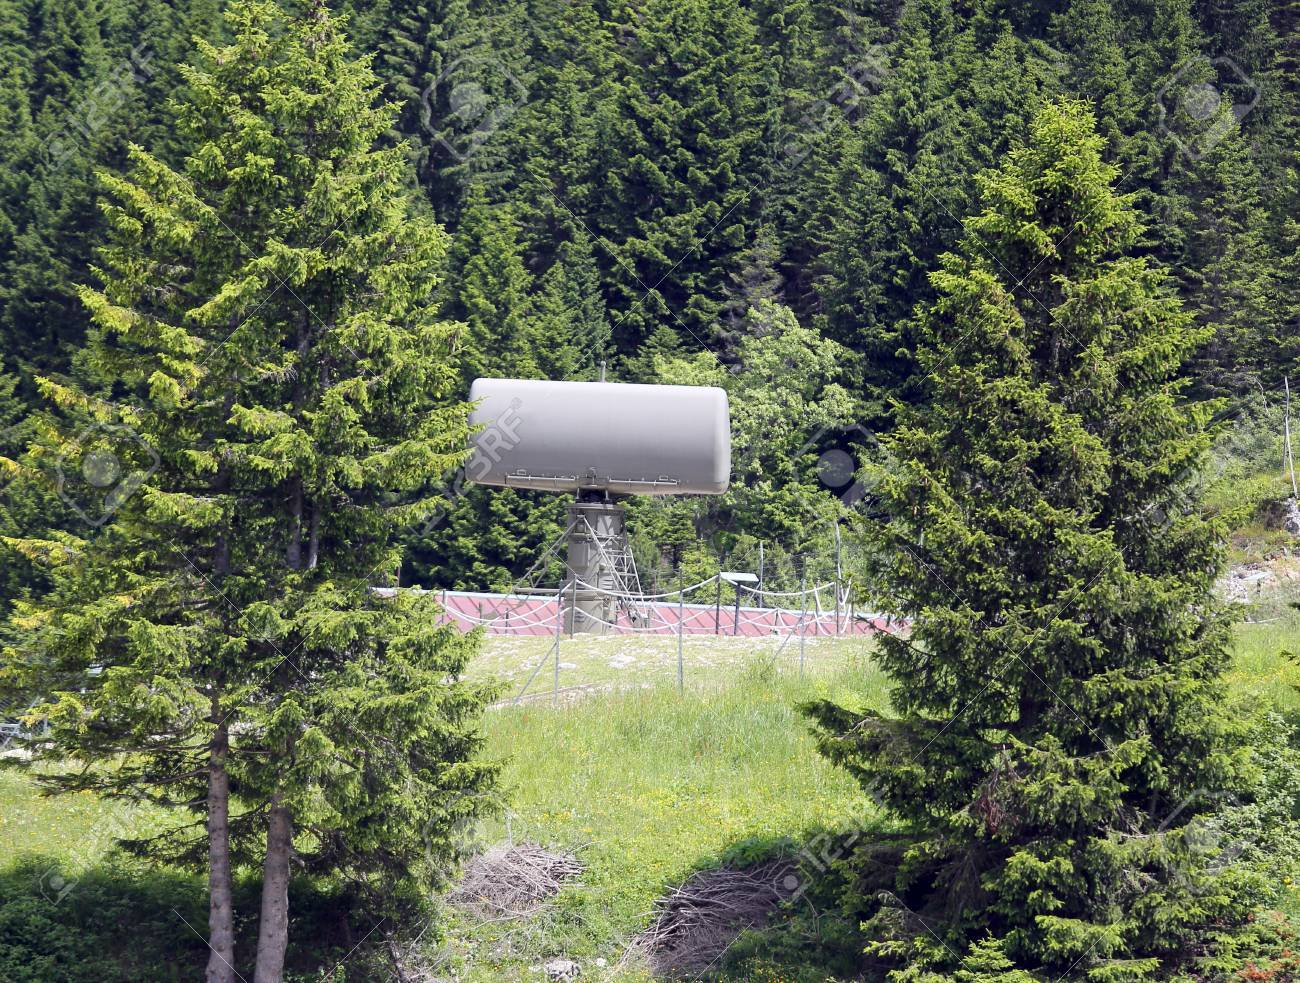 Green military radar in the secret base hidden in the forest